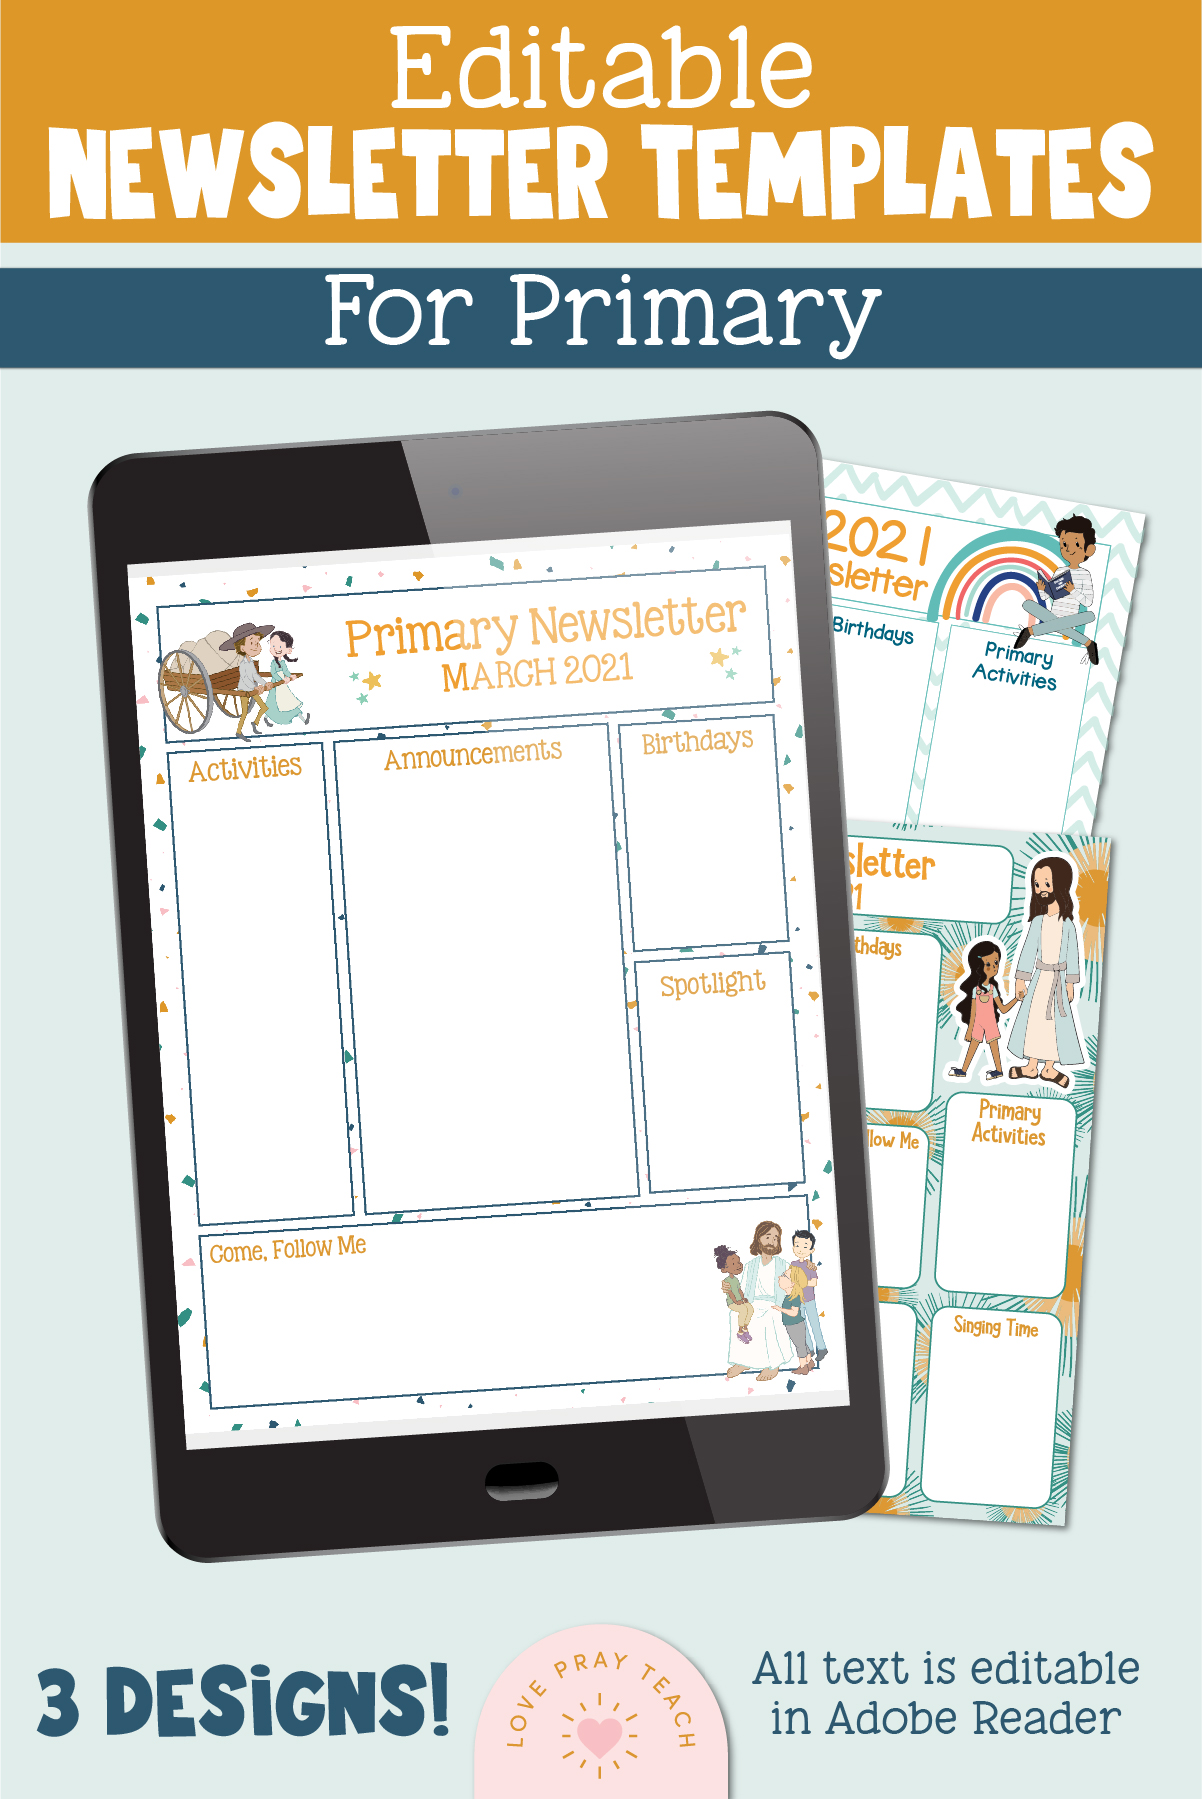 Editable Primary Newsletter Template Bundle - 3 Designs! www.LovePrayTeach.com